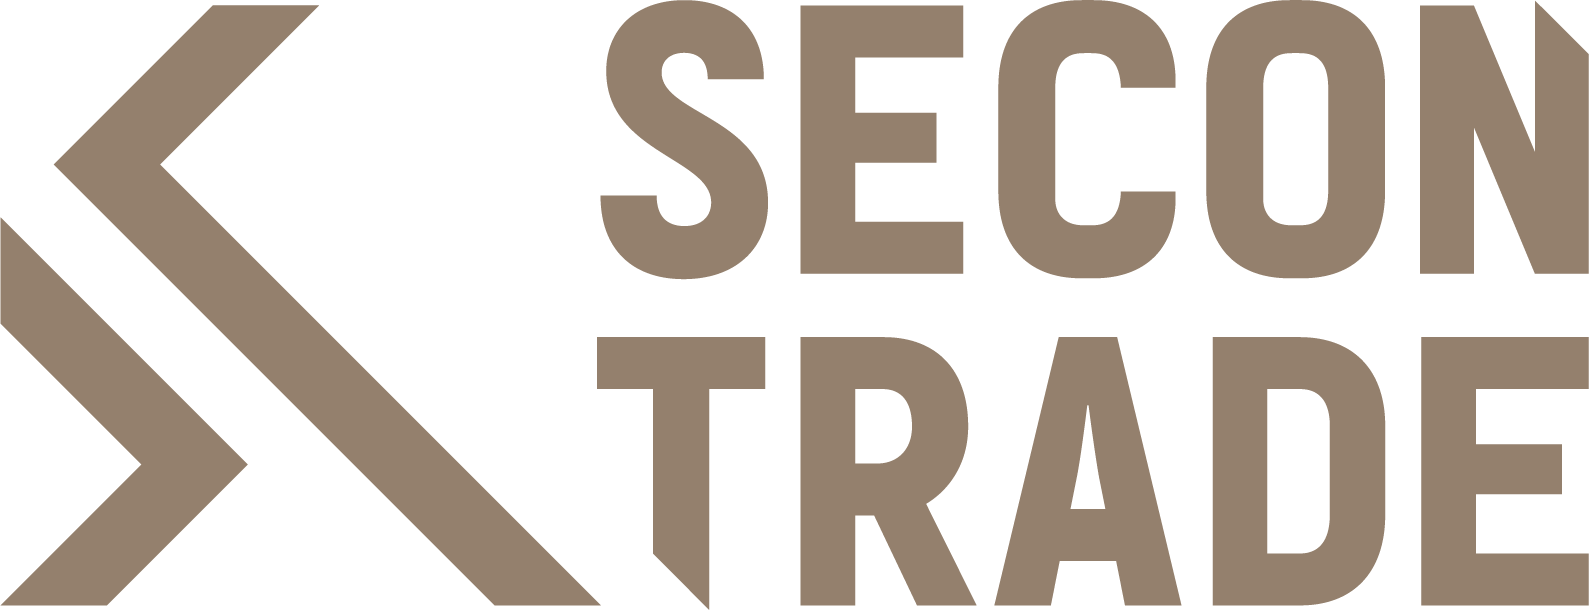 Secontrade Logo